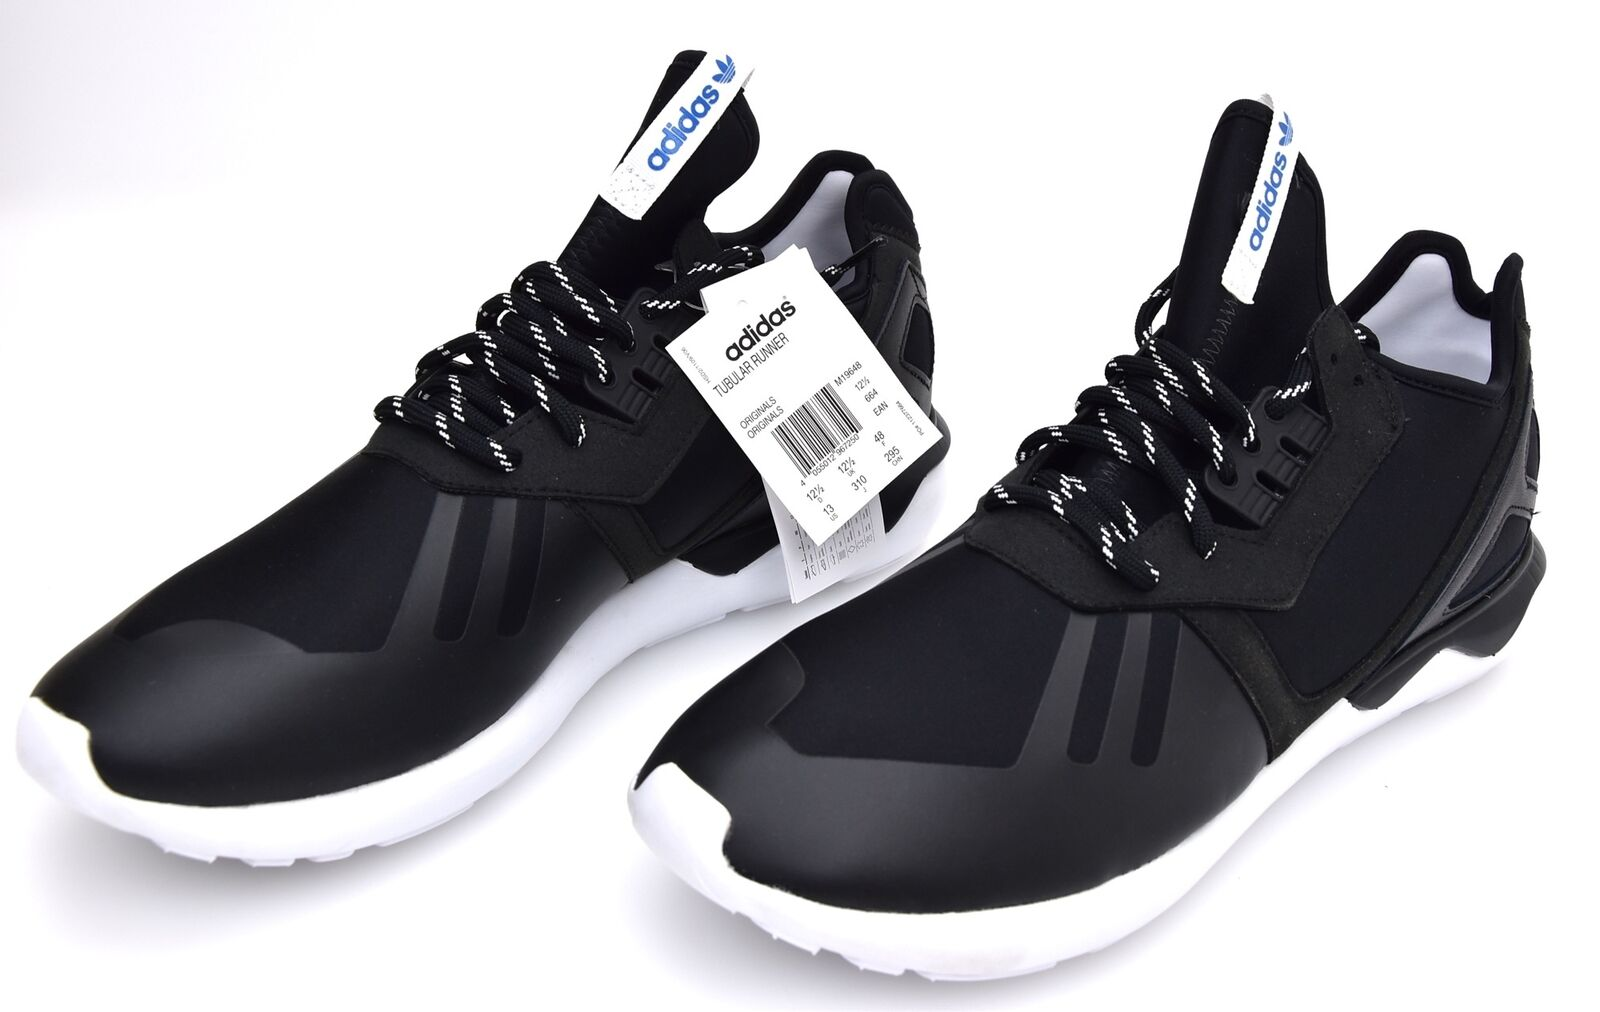 ADIDAS MAN SPORTS SPORTS SPORTS SNEAKER SHOES CASUAL FREE TIME CODE M19648 TUBULAR RUNNER 8c33b4